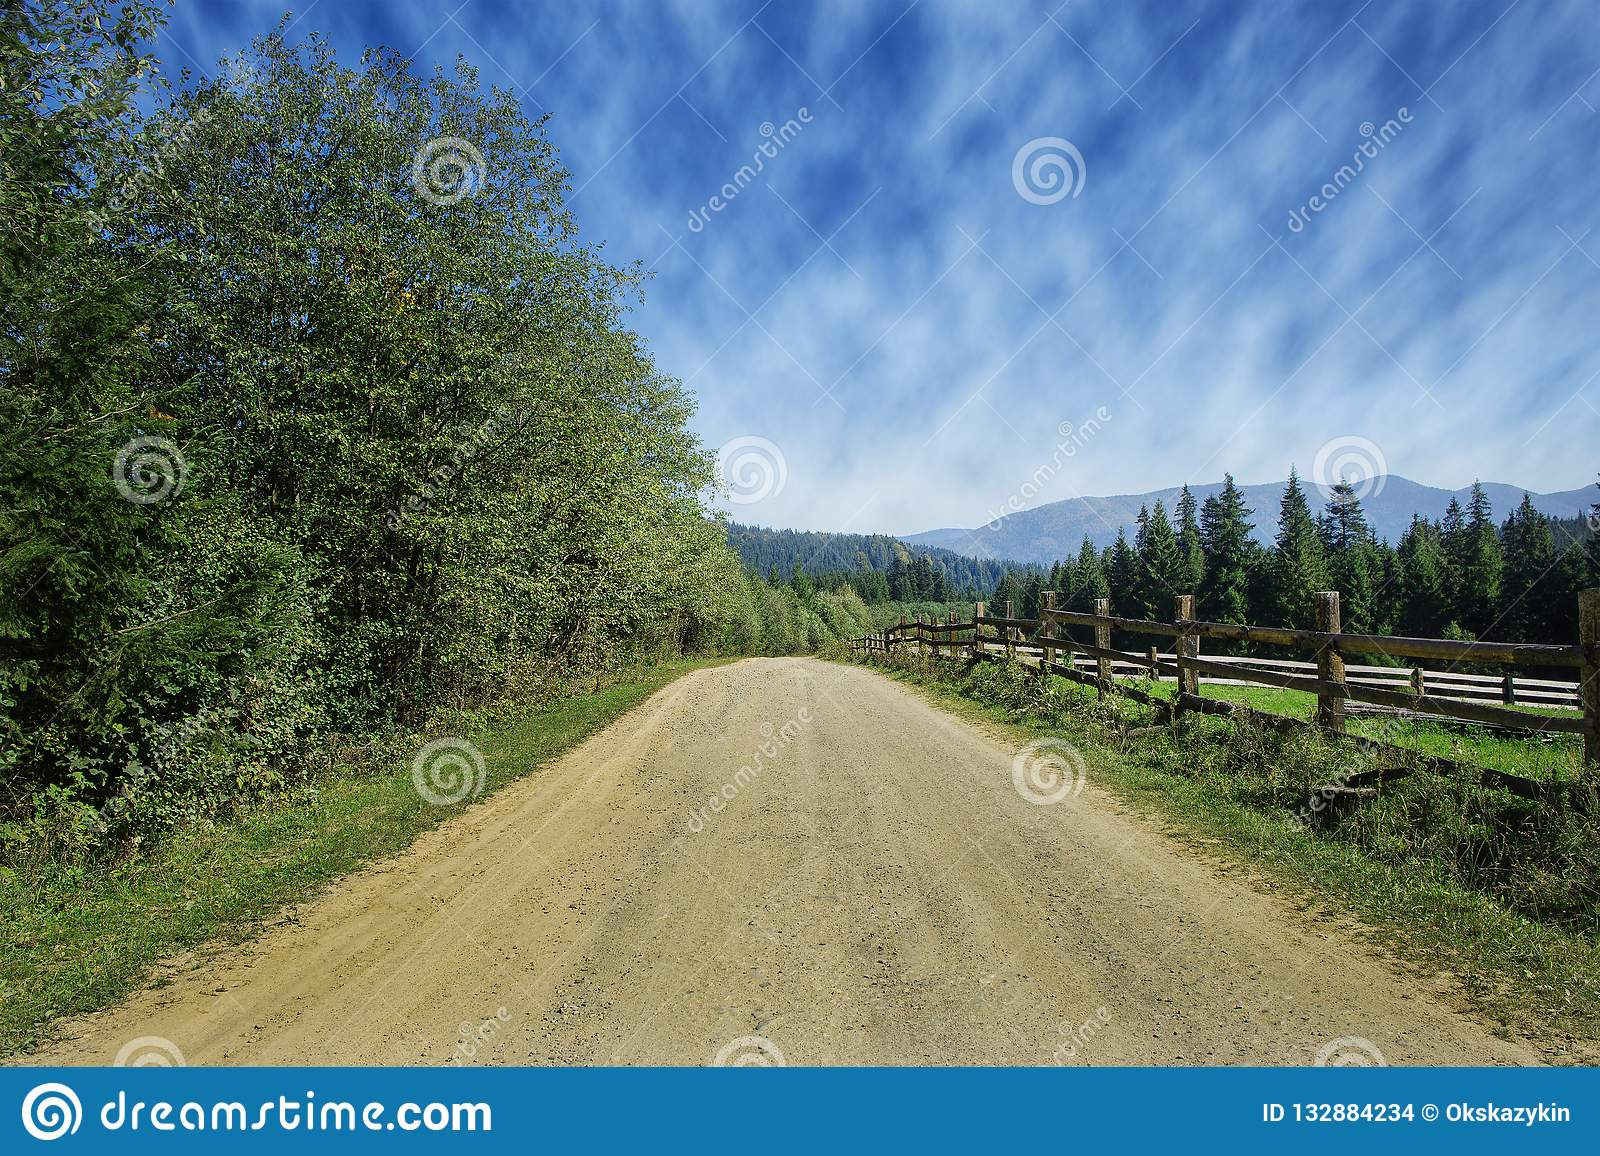 Travel road on the field with green grass and blue sky with clouds on the farm in beautiful summer sunny day. Clean, idyllic, land